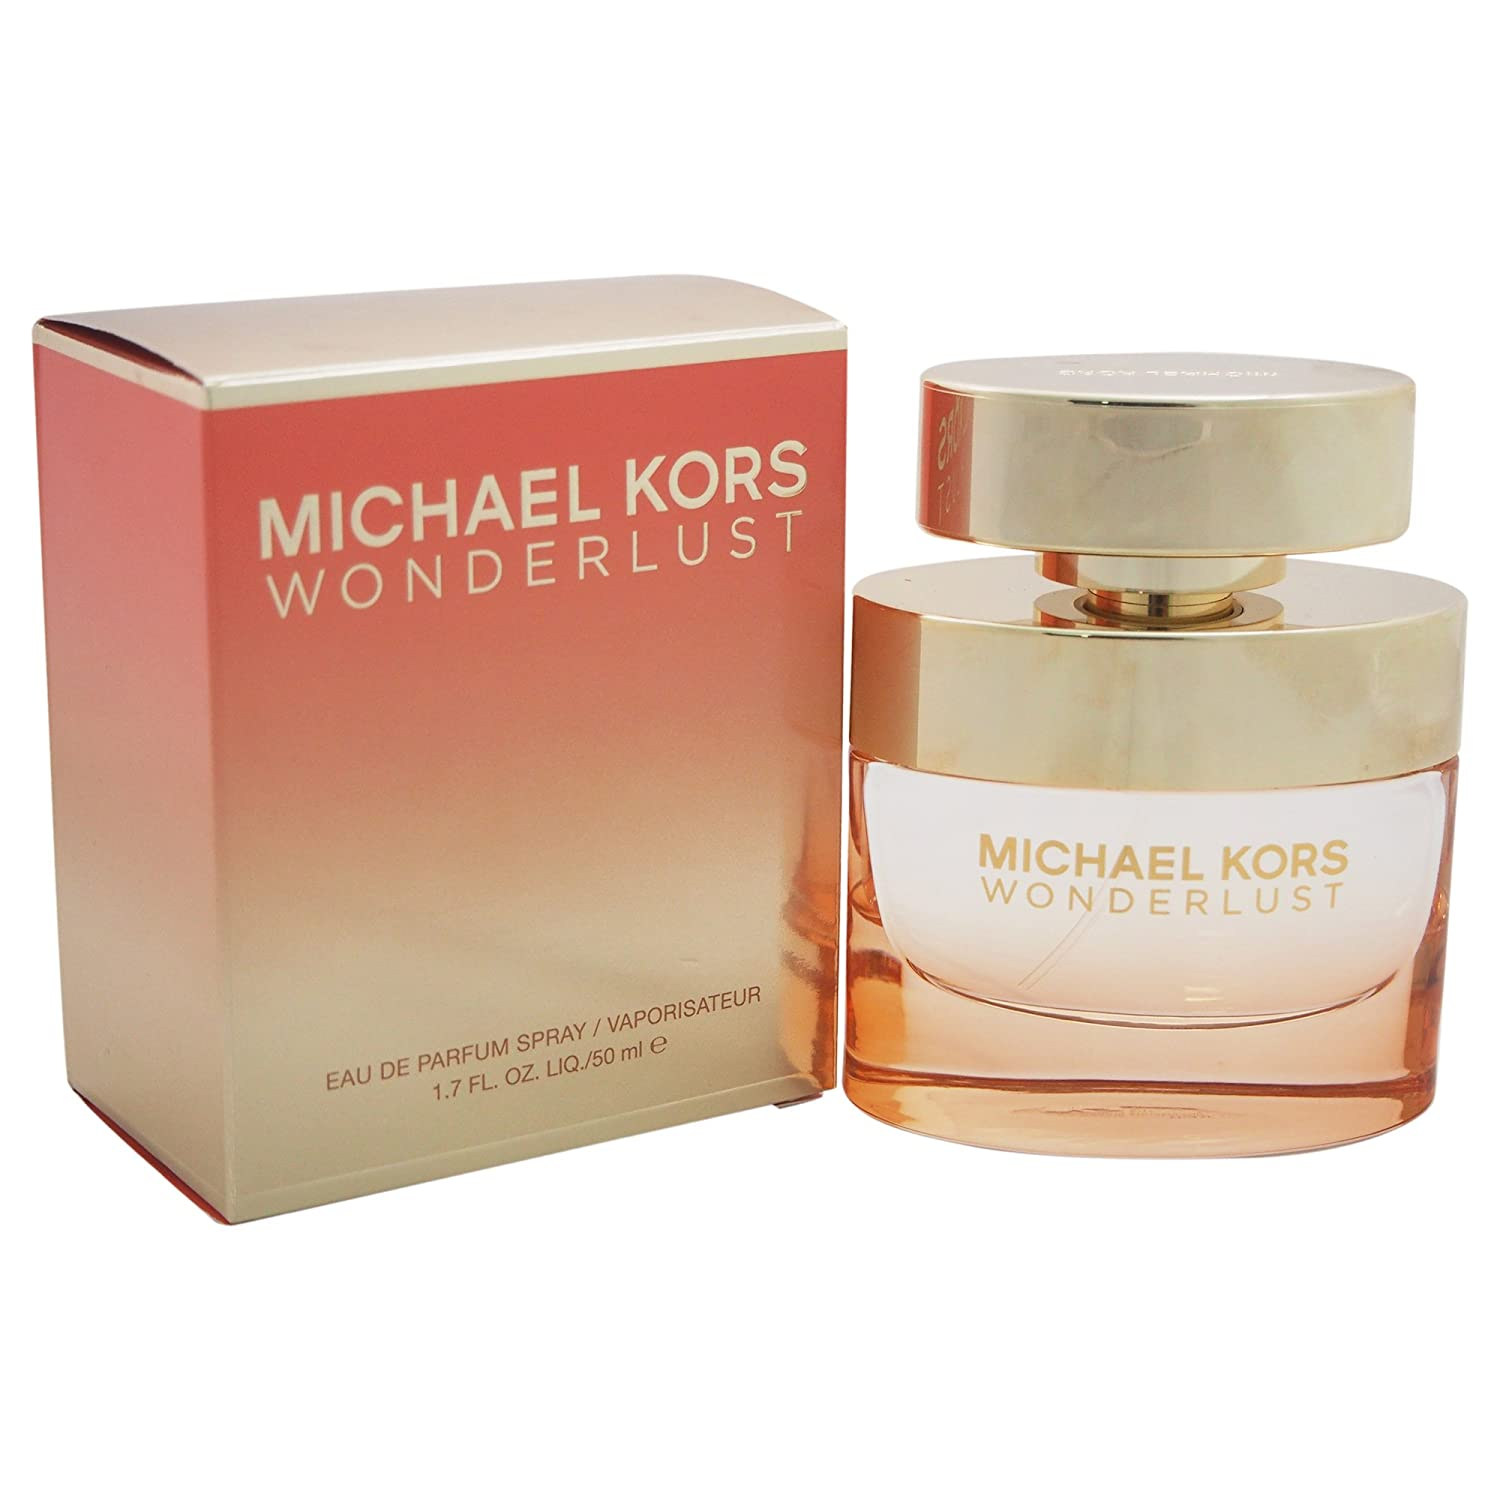 42ad688f1554 Amazon.com   Michael Kors Wonderlust Eau de Parfum Spray